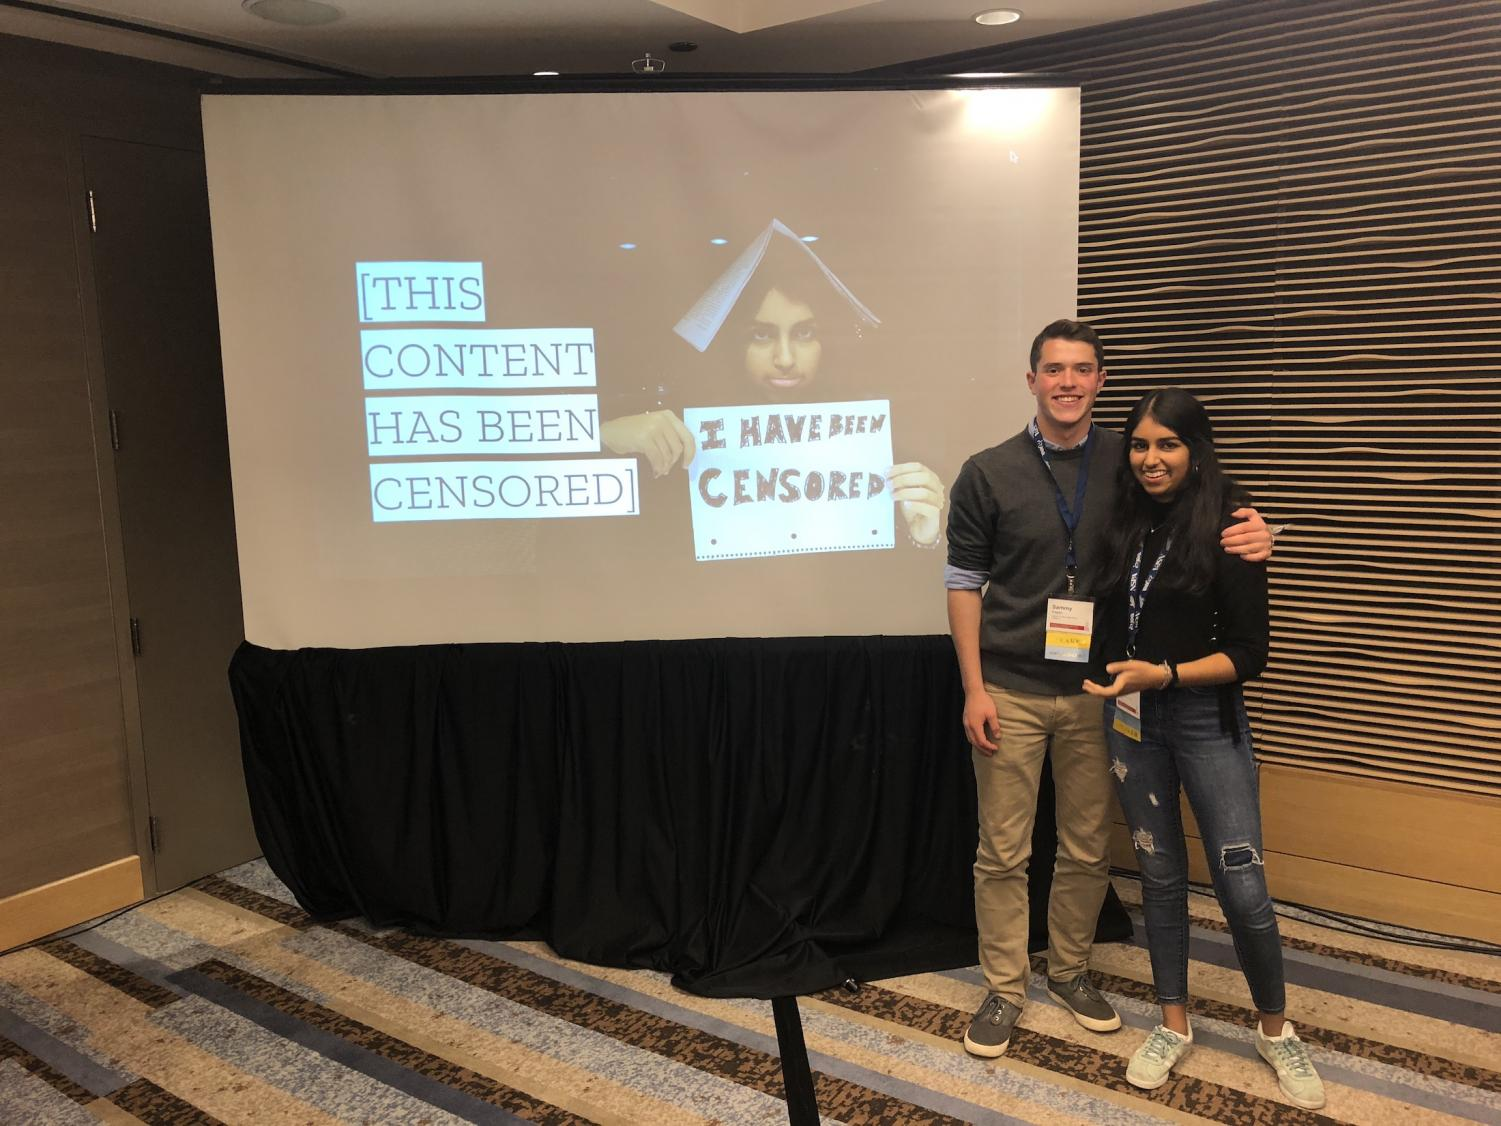 Senior Sammy Kagan (left) and junior Avani Kalra (right) pose after presenting at the NSPA/JEA High School Journalism Convention about their experiences with censorship and advice to students at other schools.